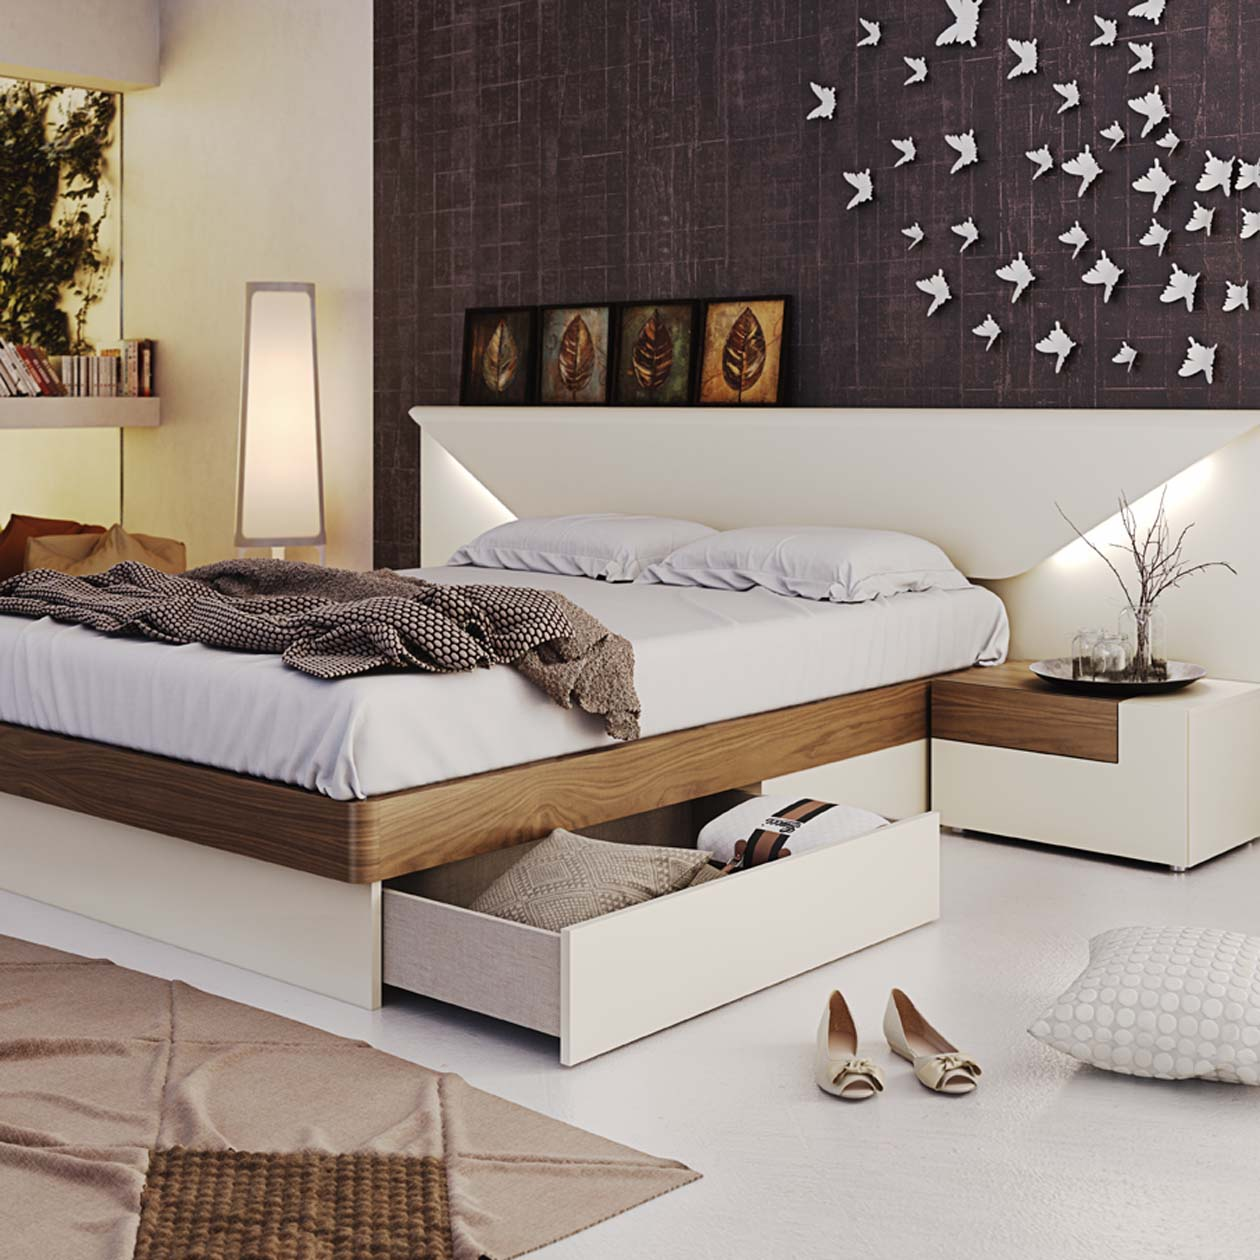 Elena Bedroom, Modern Bedrooms, Bedroom Furniture